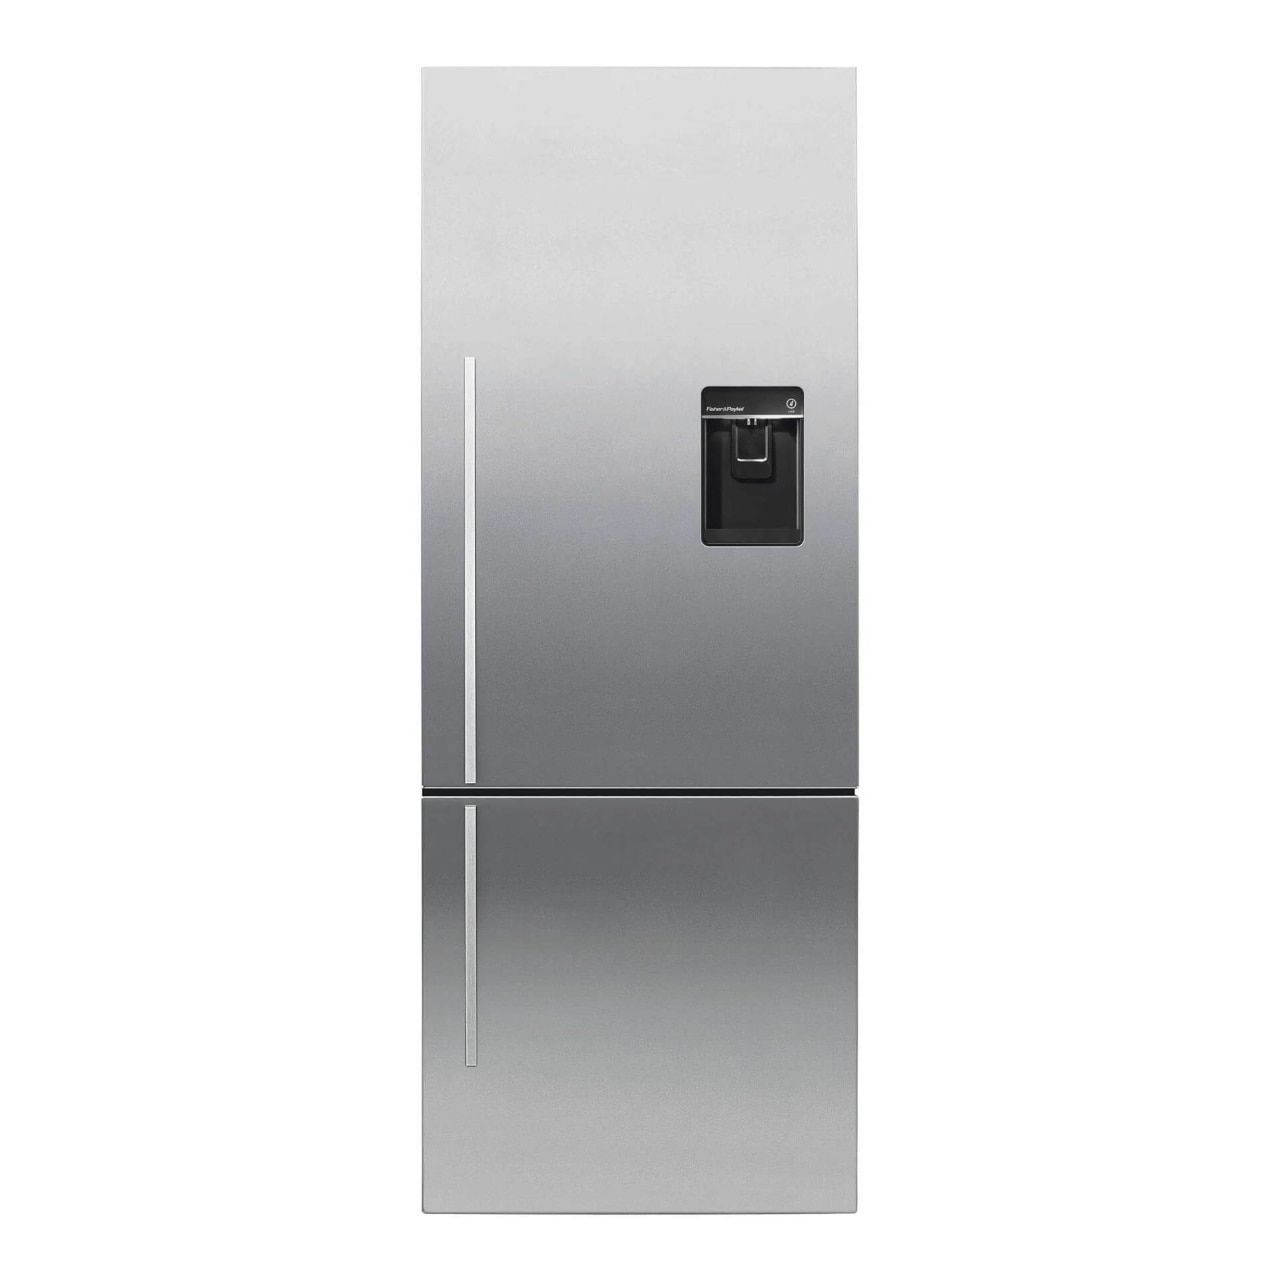 Fisher Paykel Active Smart Rf135bdrux4 25 Inch Counter Depth Bottom Freezer Refrigerator Right Hinge Bottom Freezer Refrigerator Stainless Steel Refrigerator